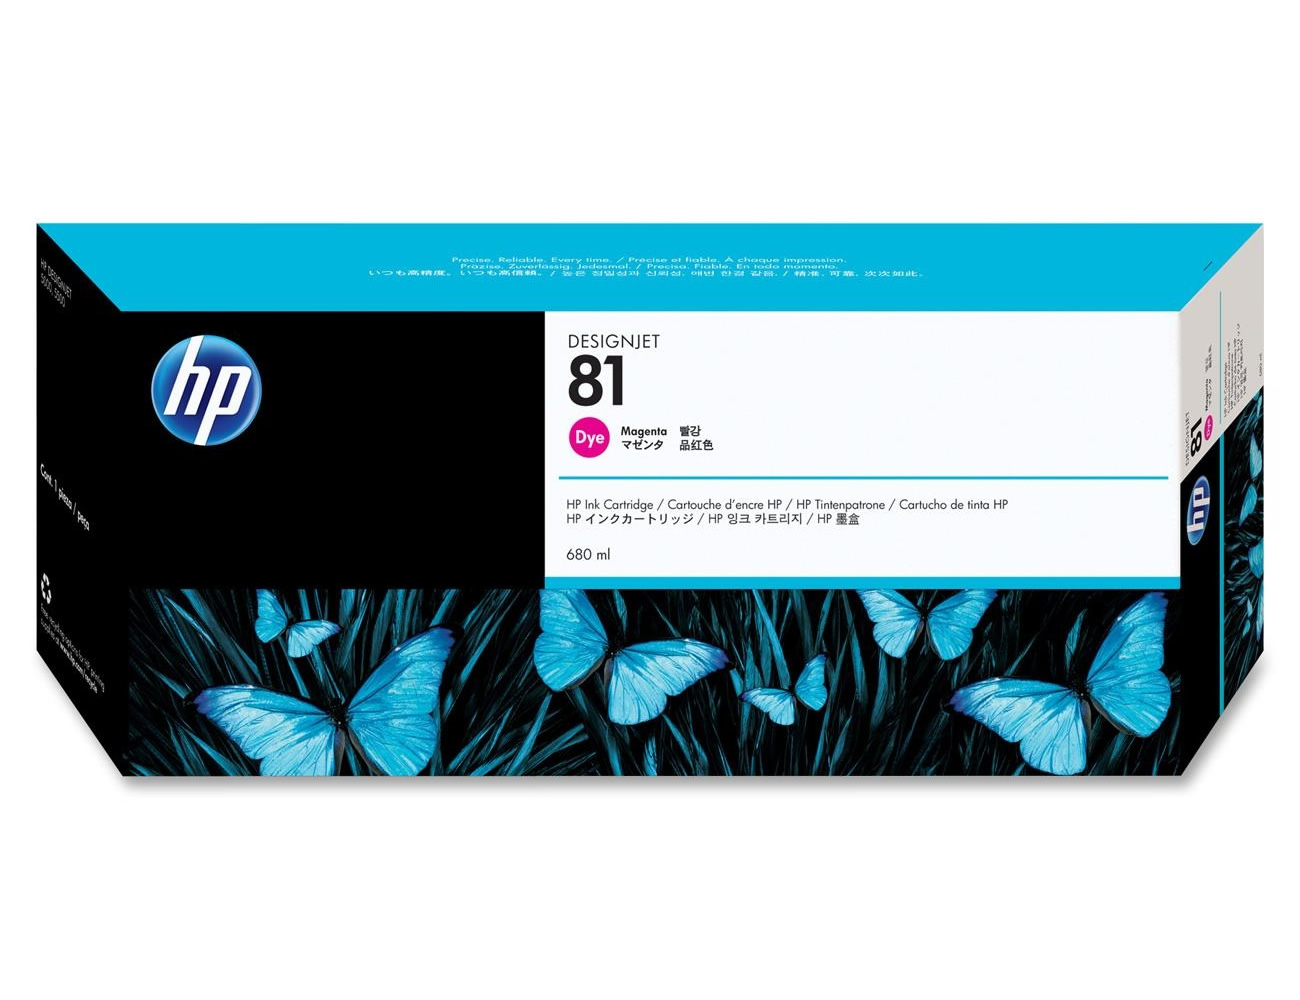 HP 81 Magenta Dye Ink Cartridge C4932A